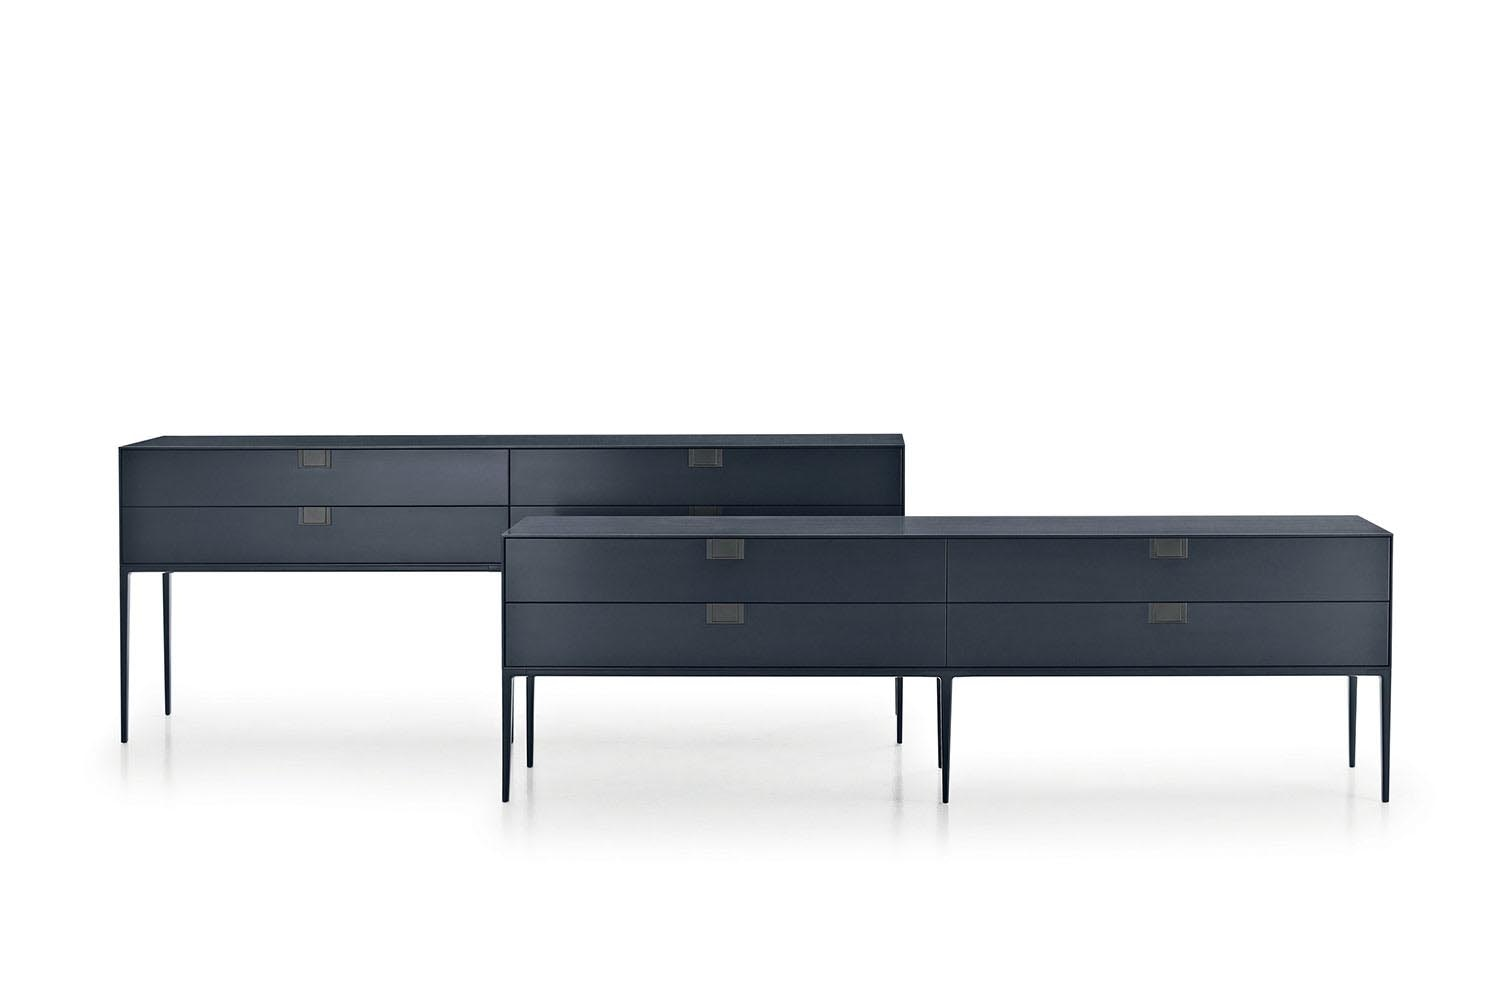 Alcor Console by Antonio Citterio for Maxalto